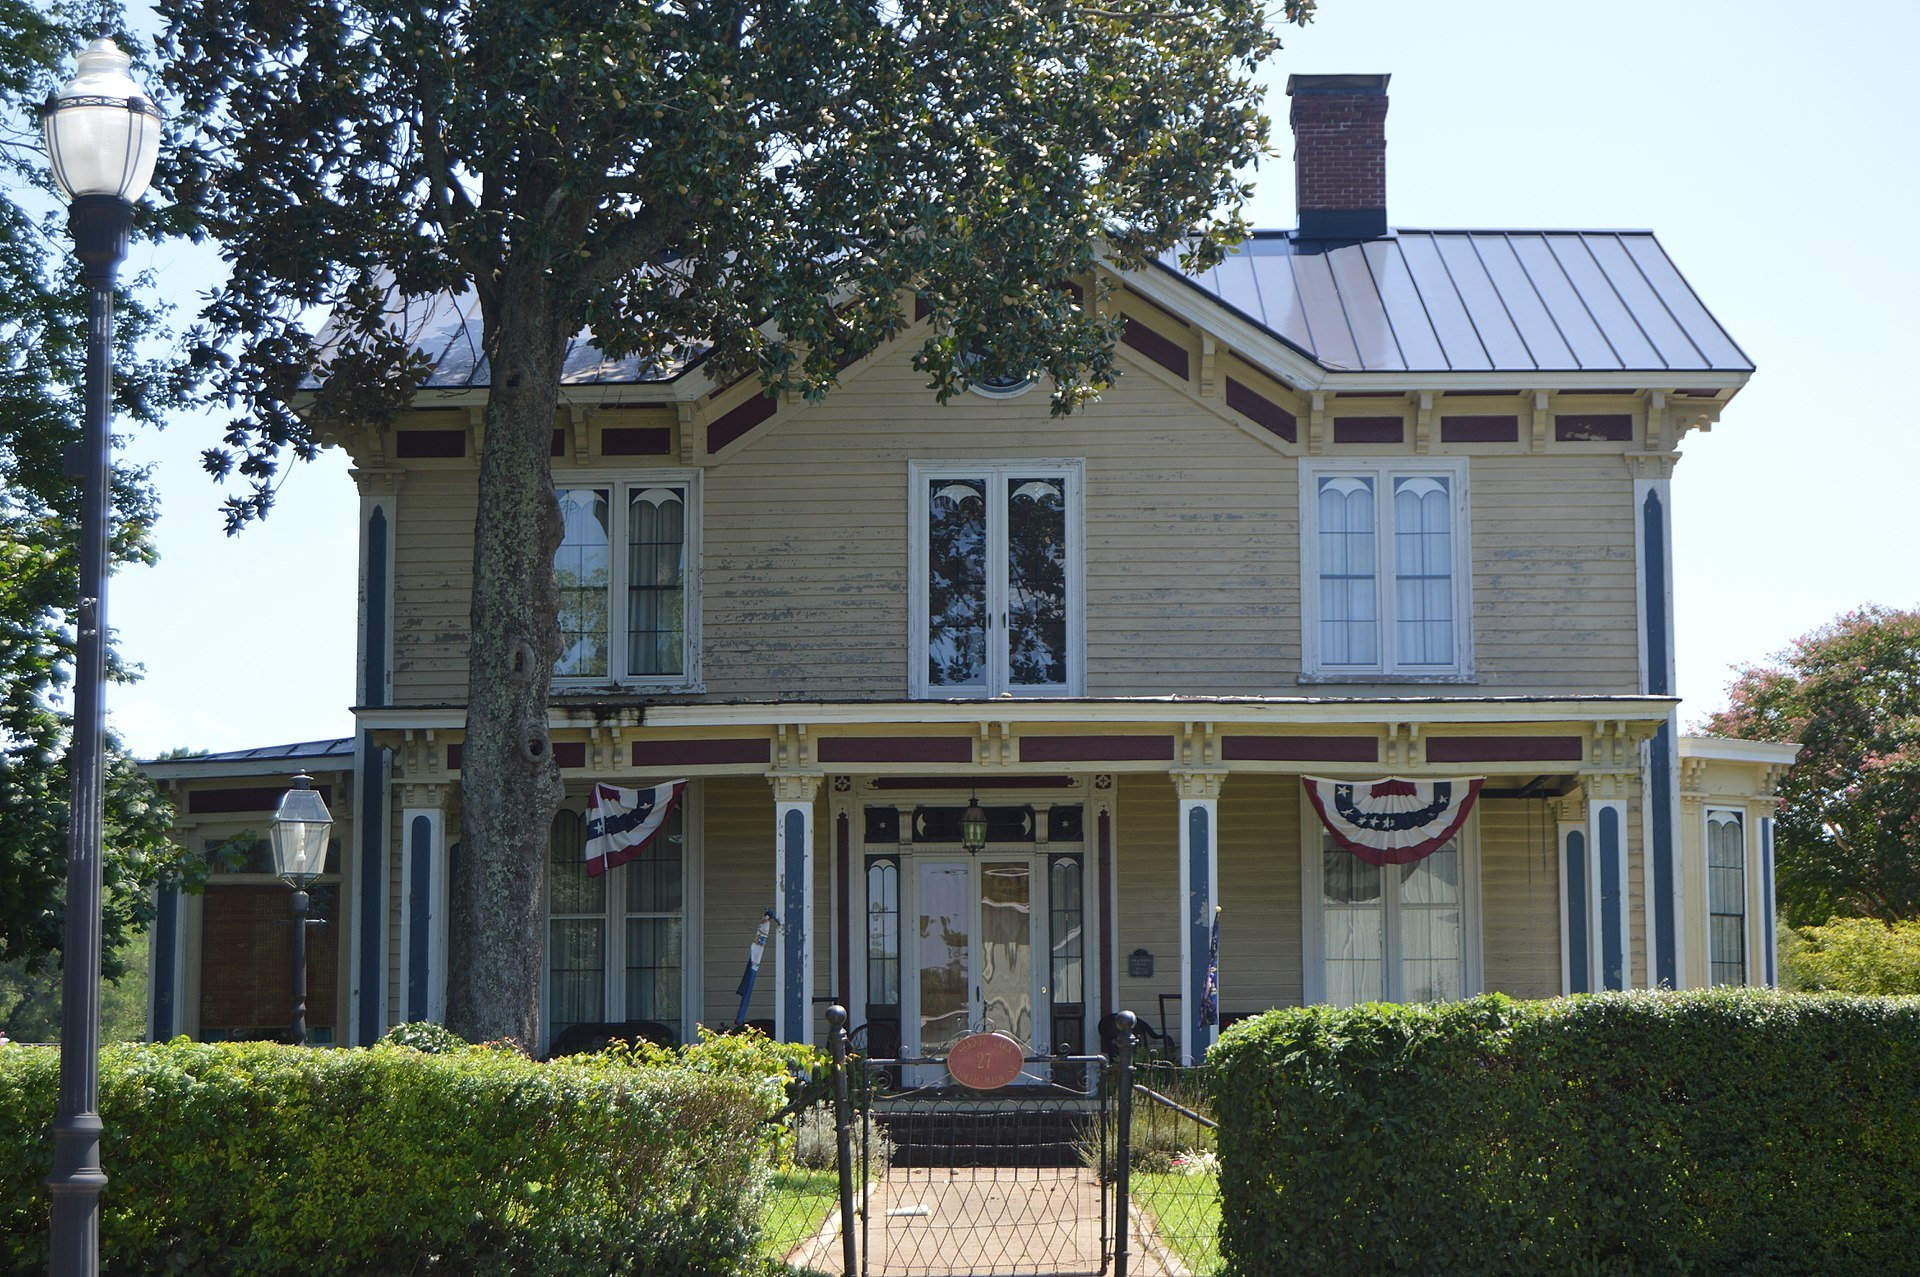 The Italianate exterior of Shadow Lawn was completed in 1870 and the home was once part of the Mineral Springs Hotel.